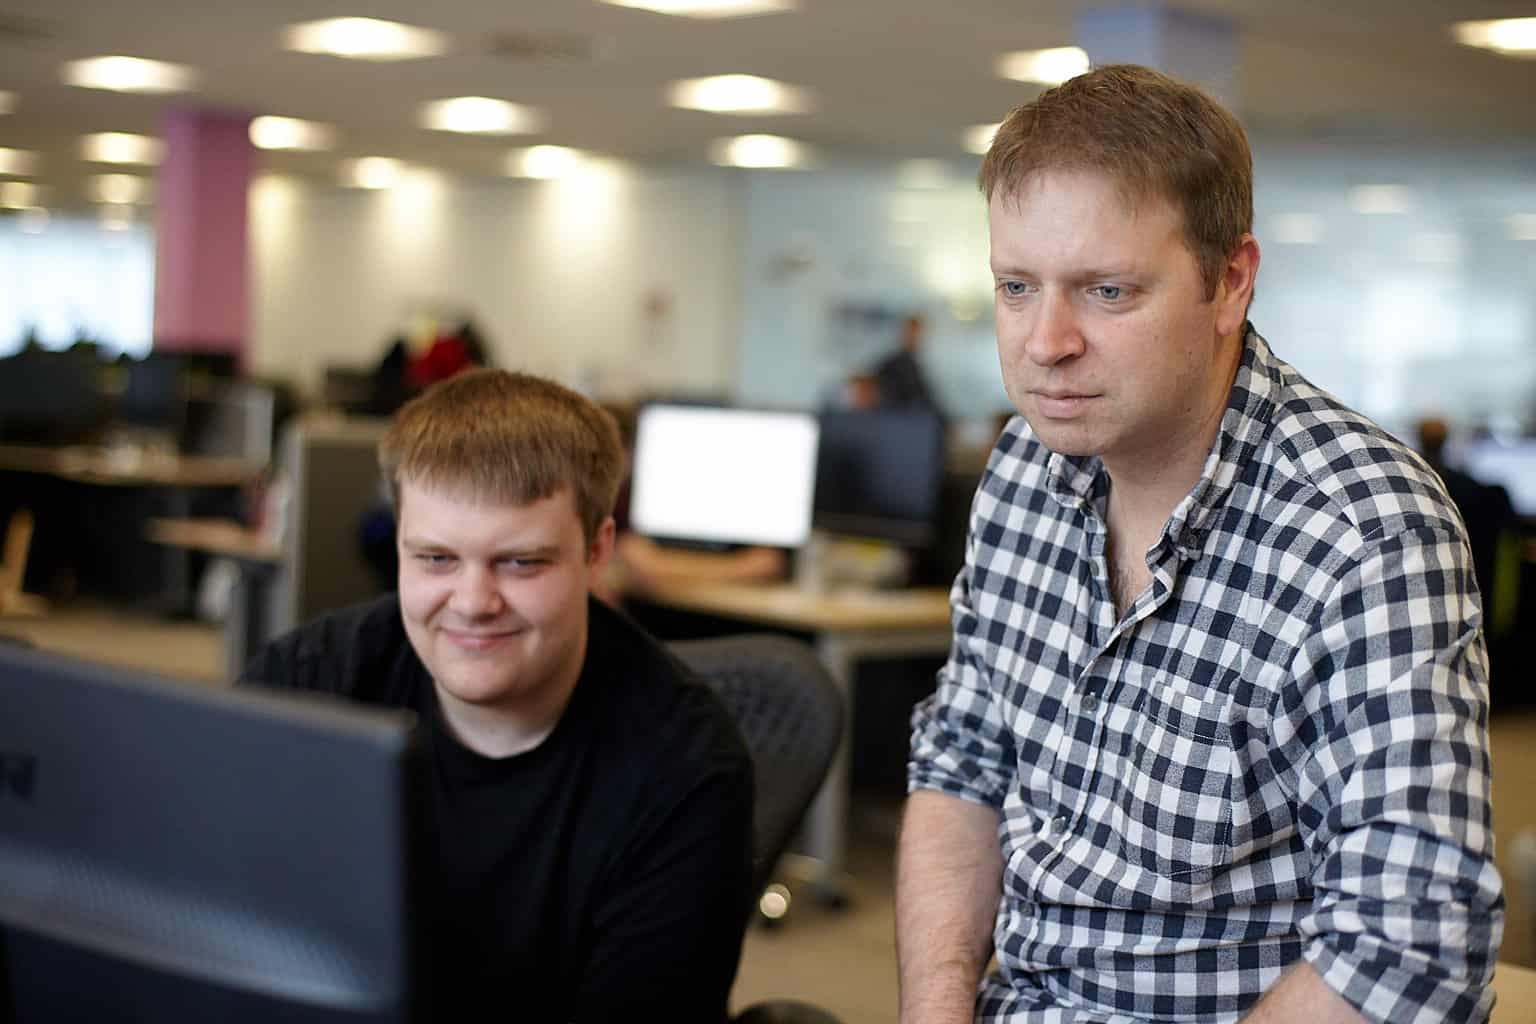 A day in the life of a PlayStation development tools specialist